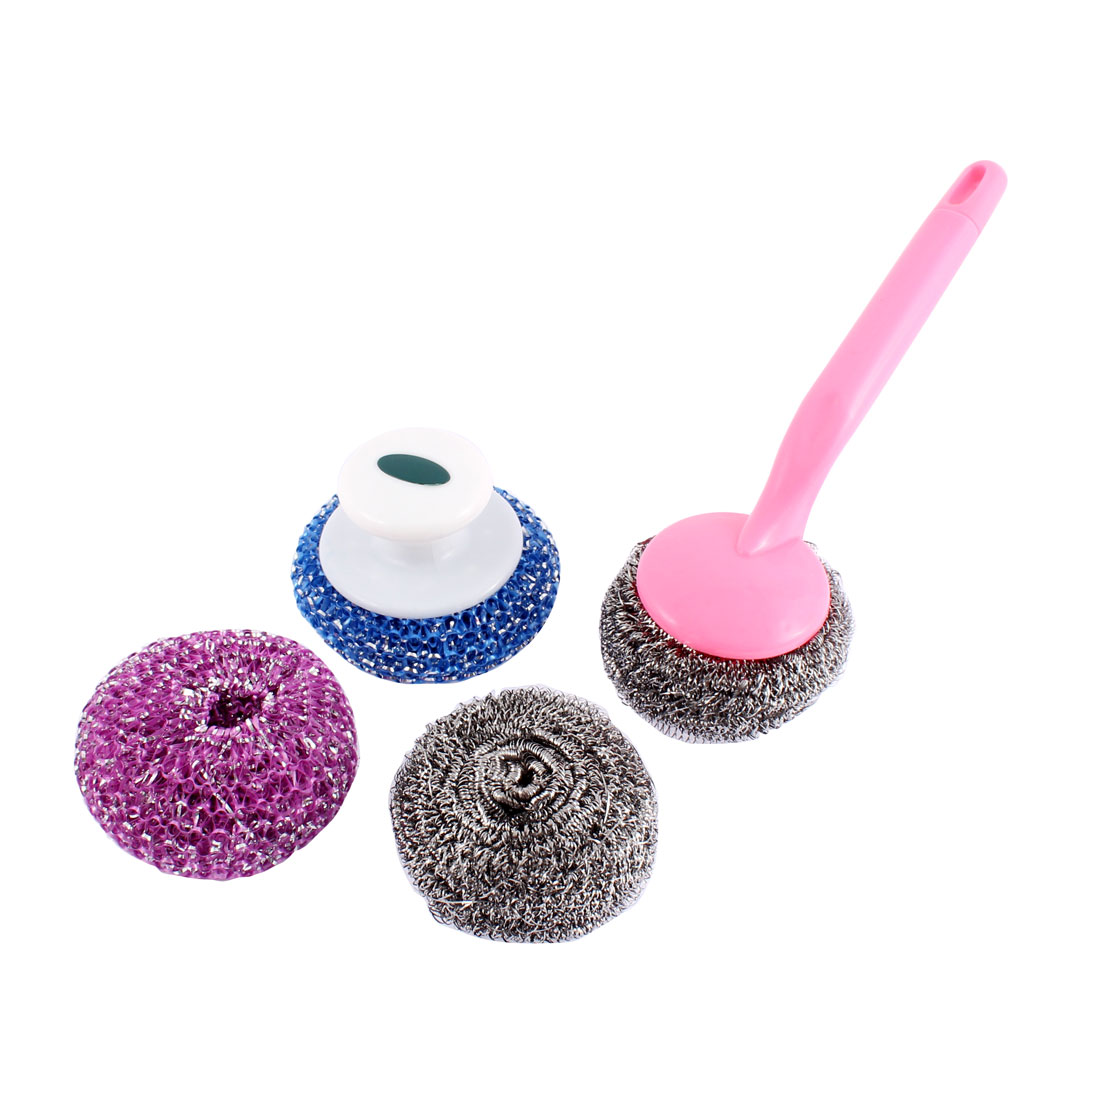 Kitchen Pan Scrub Cleaning Brush Steel Wire Ball Pink Grip 4 in 1